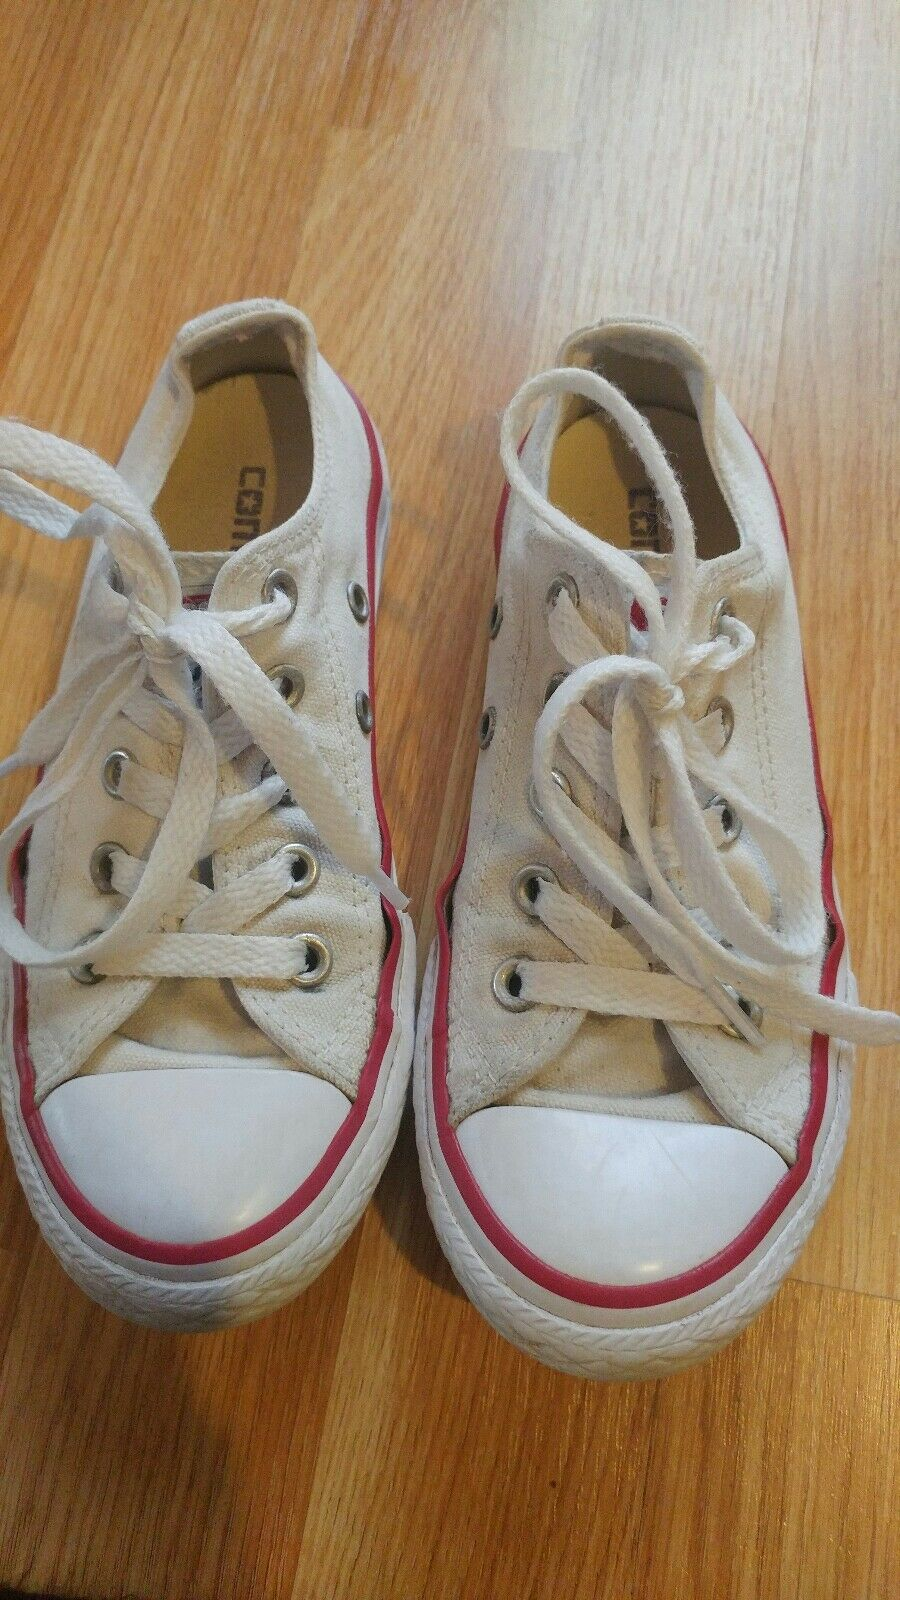 Navy Blue Hi From High Top Canvas Sneakers Size 5 From Hi Forever 21 c1f9b8